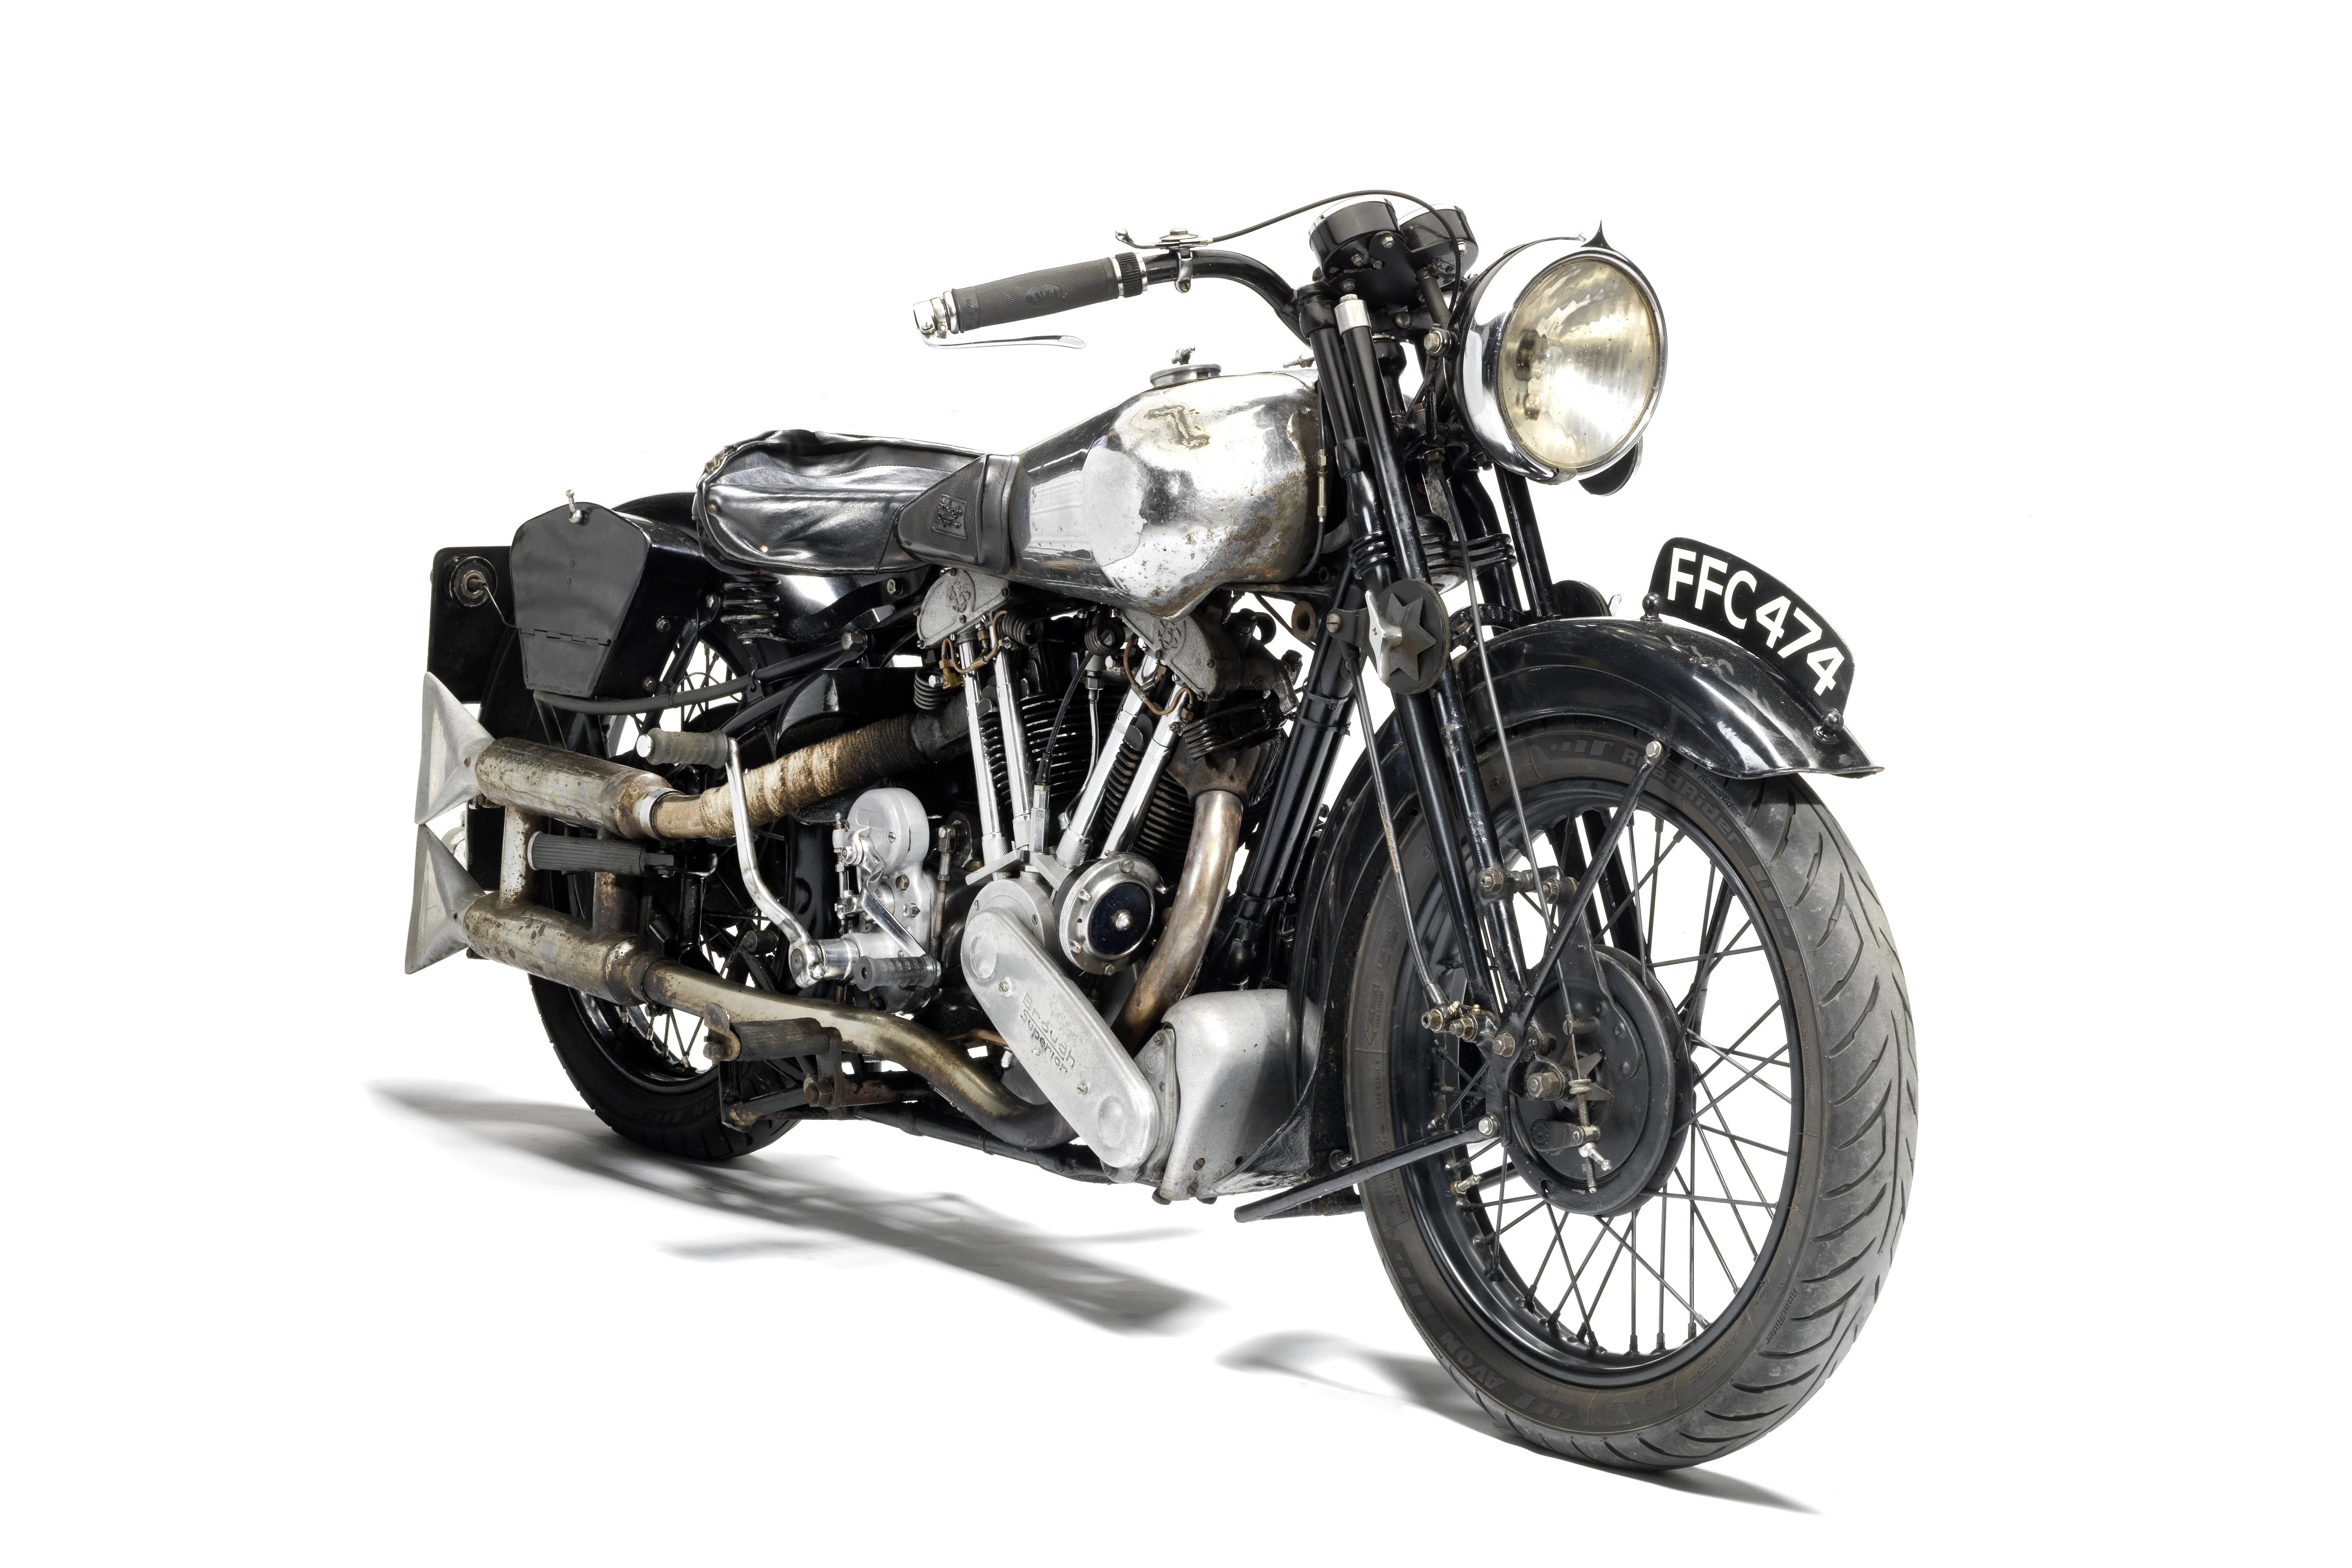 Interwar superbike to sell for up to £240,000